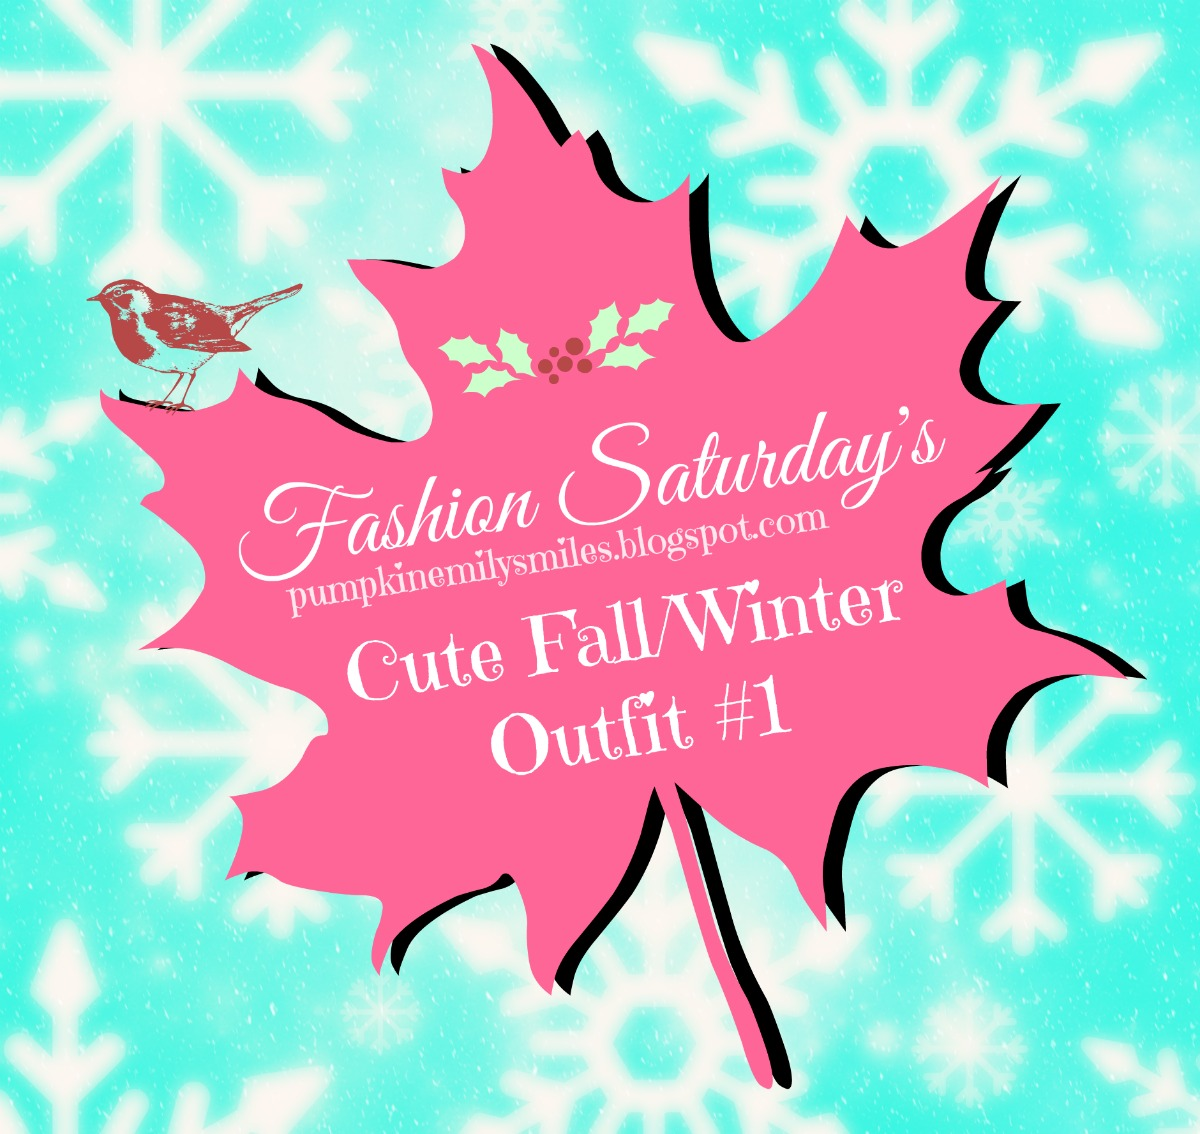 Cute Fall/Winter Outfit #1 Fashion Saturday's